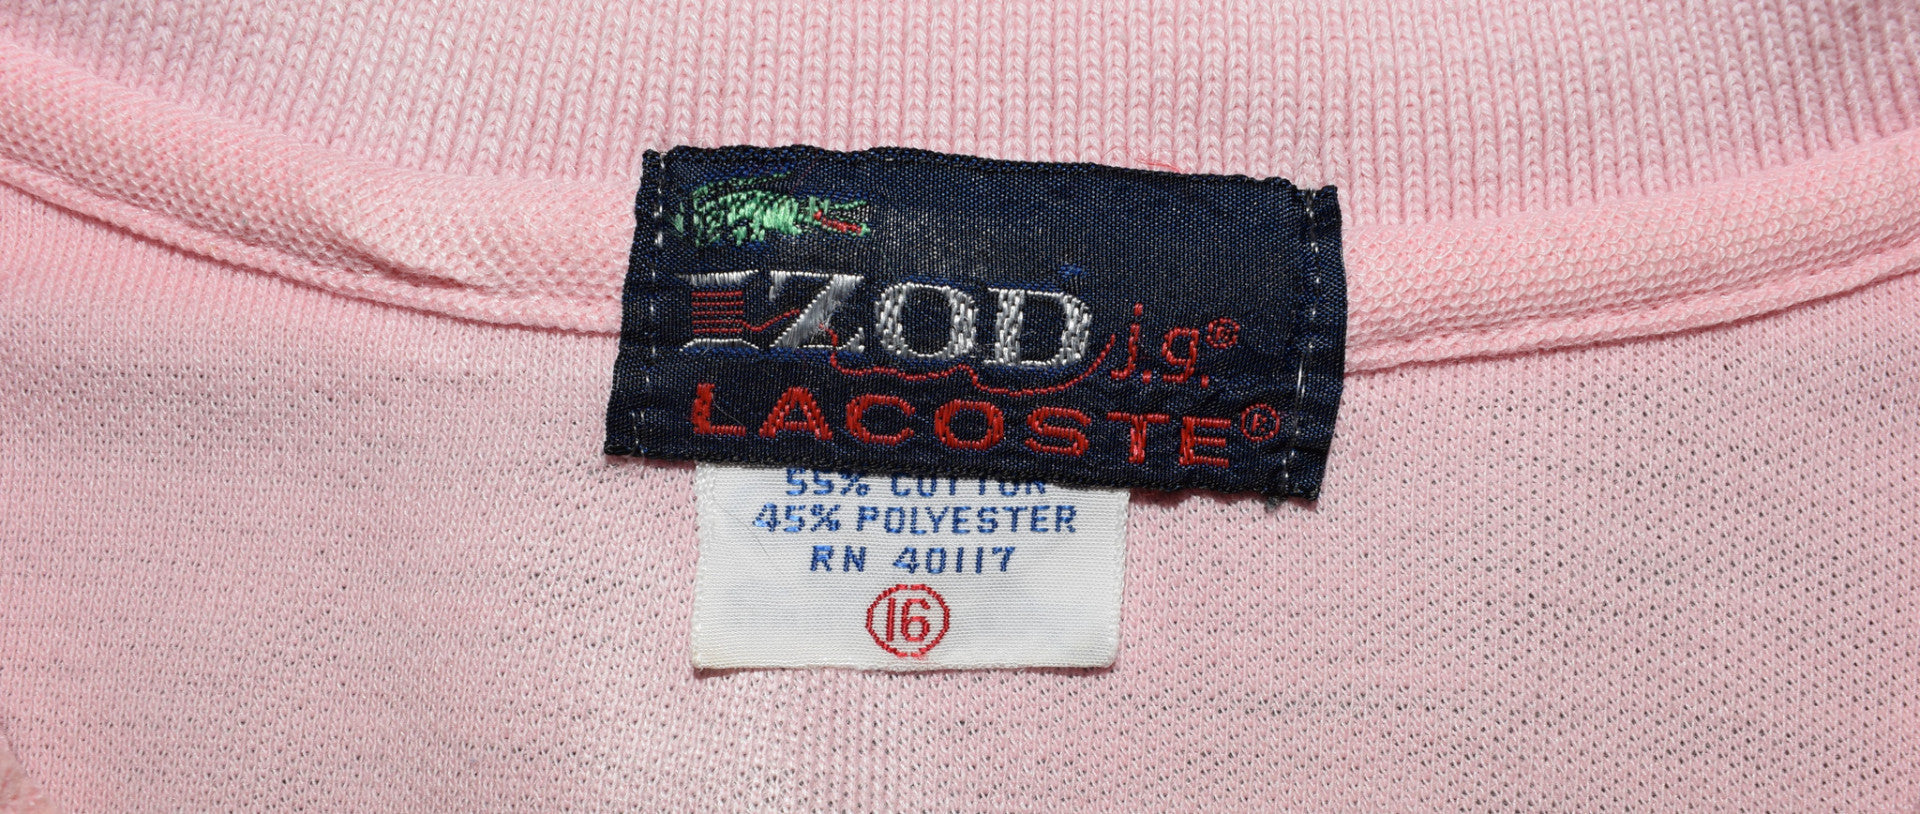 a7dc76bb 1980's vintage Lacoste polo t- shirt 'XS' – wehadtovintage.com